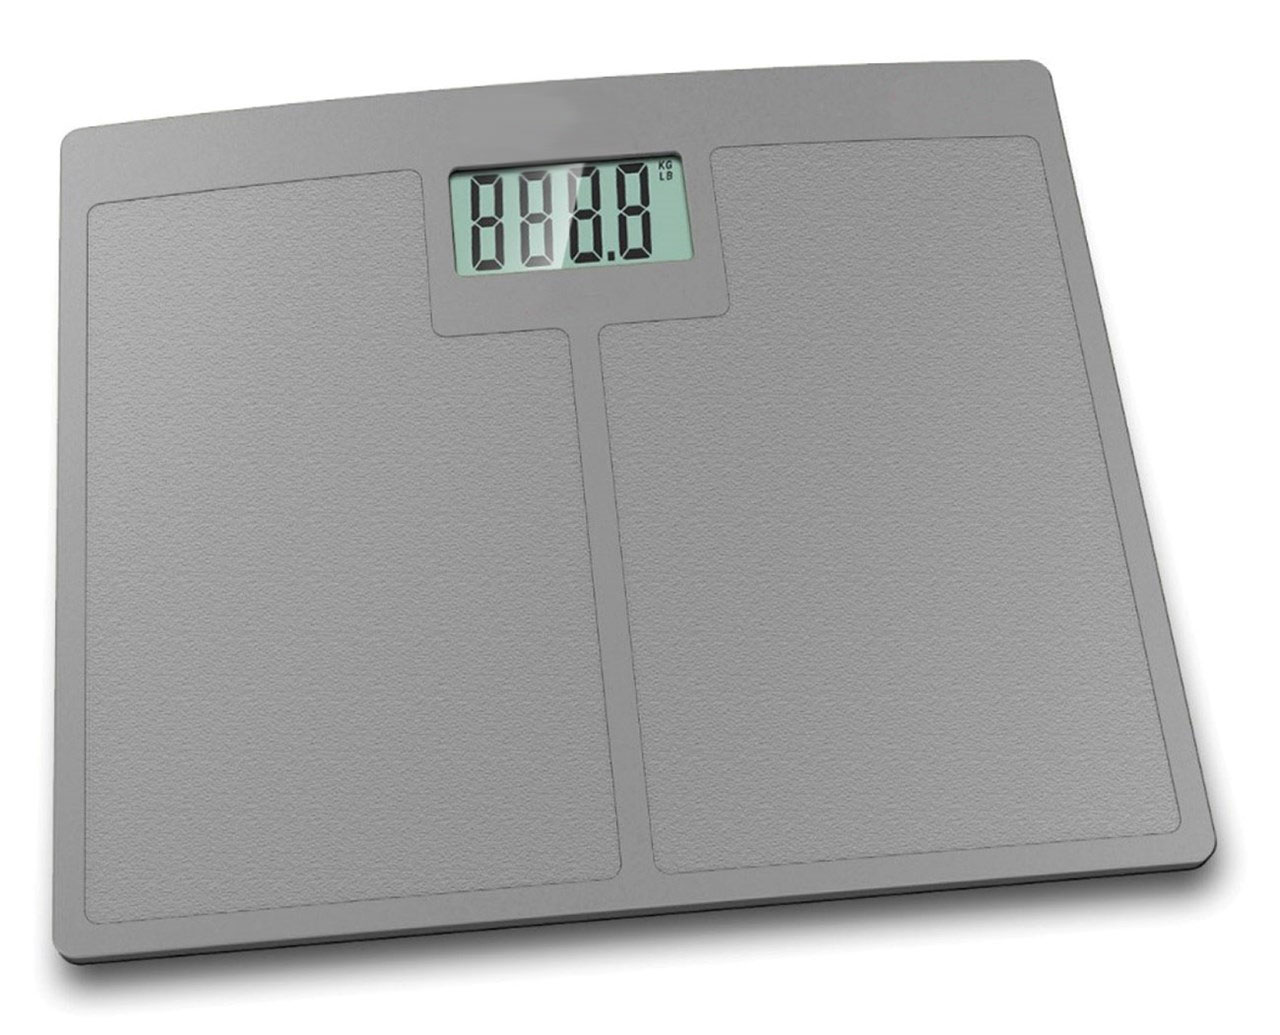 Talking Scale - English + Spanish -Weighs Up To 440lbs